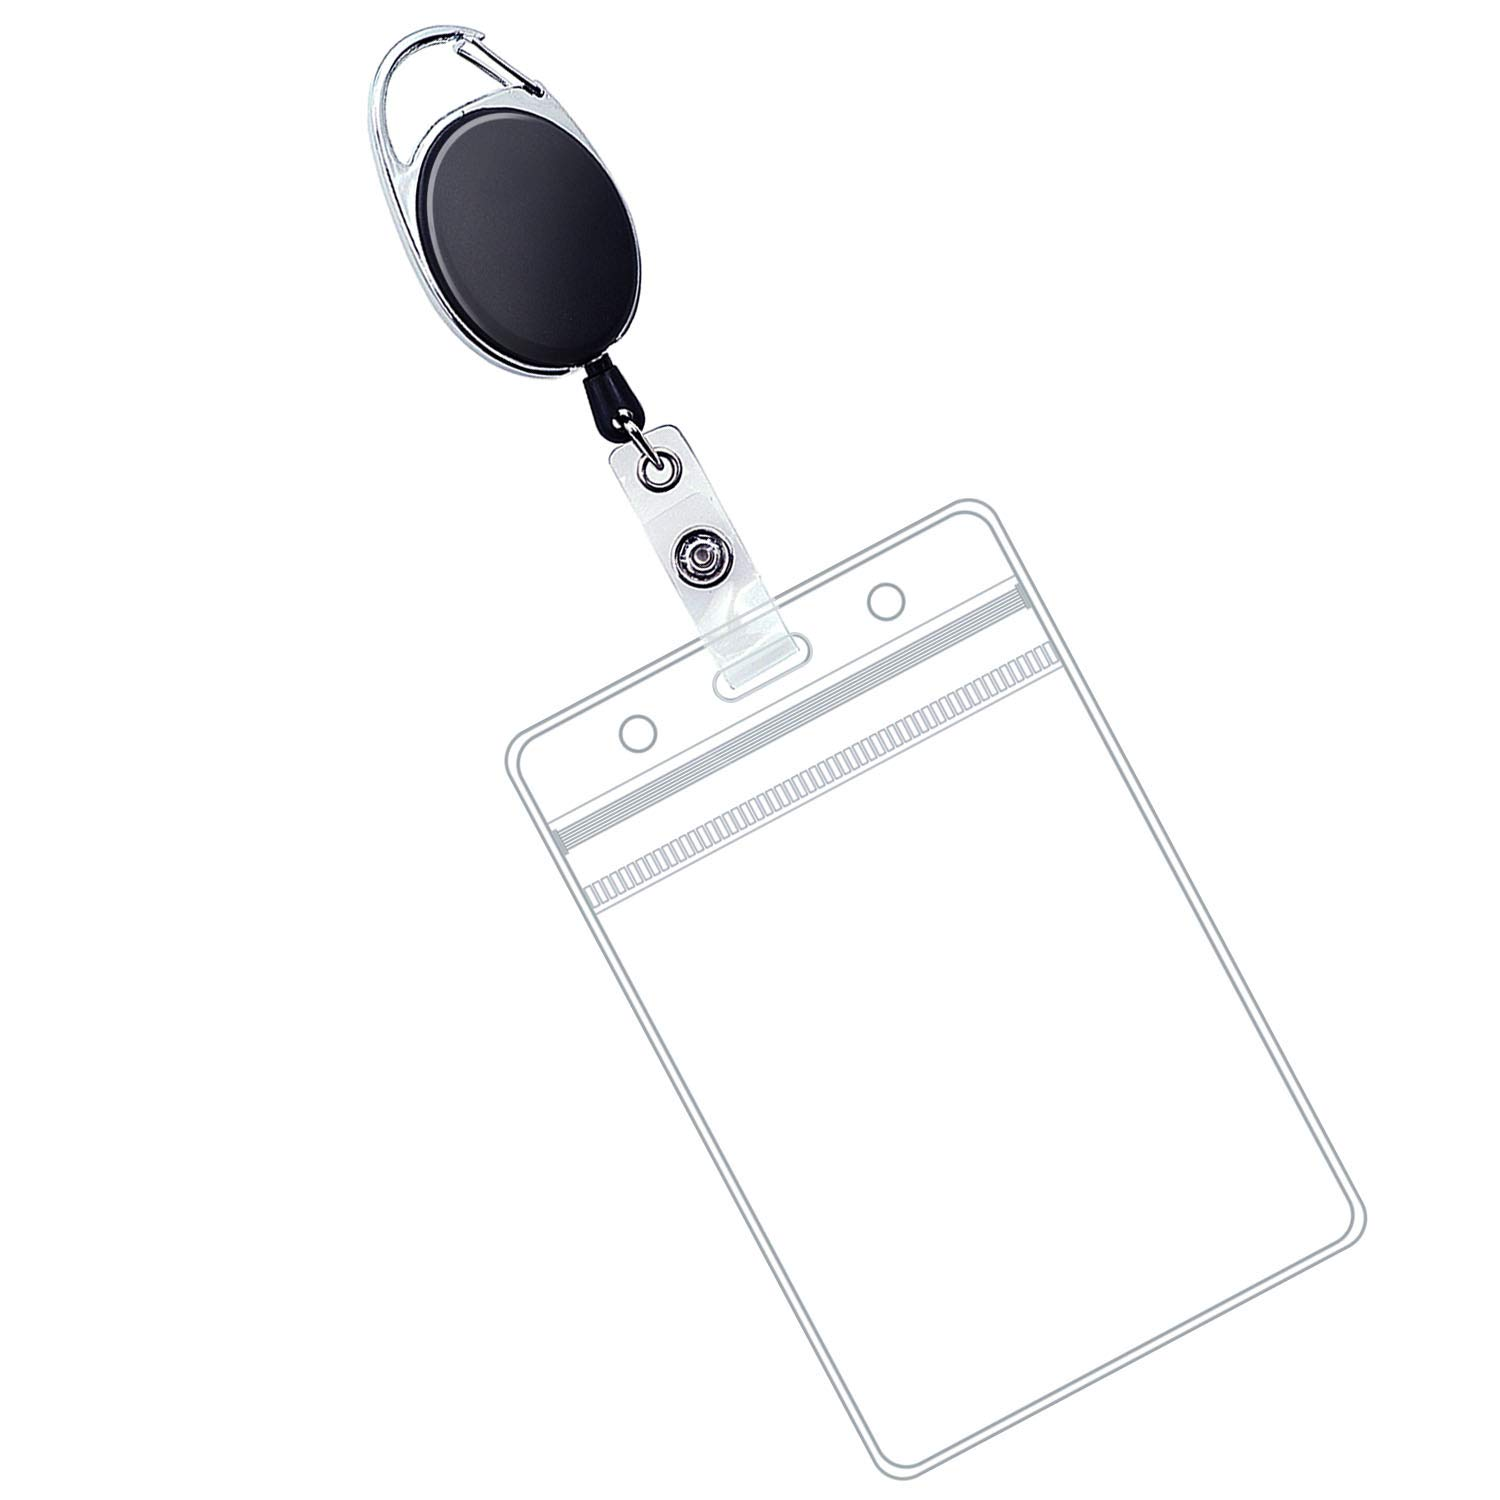 Loves ID Card Holder - 1 Retractable Badge Holders with Carabiner Reel Clip and Vertical Card Holder, Black